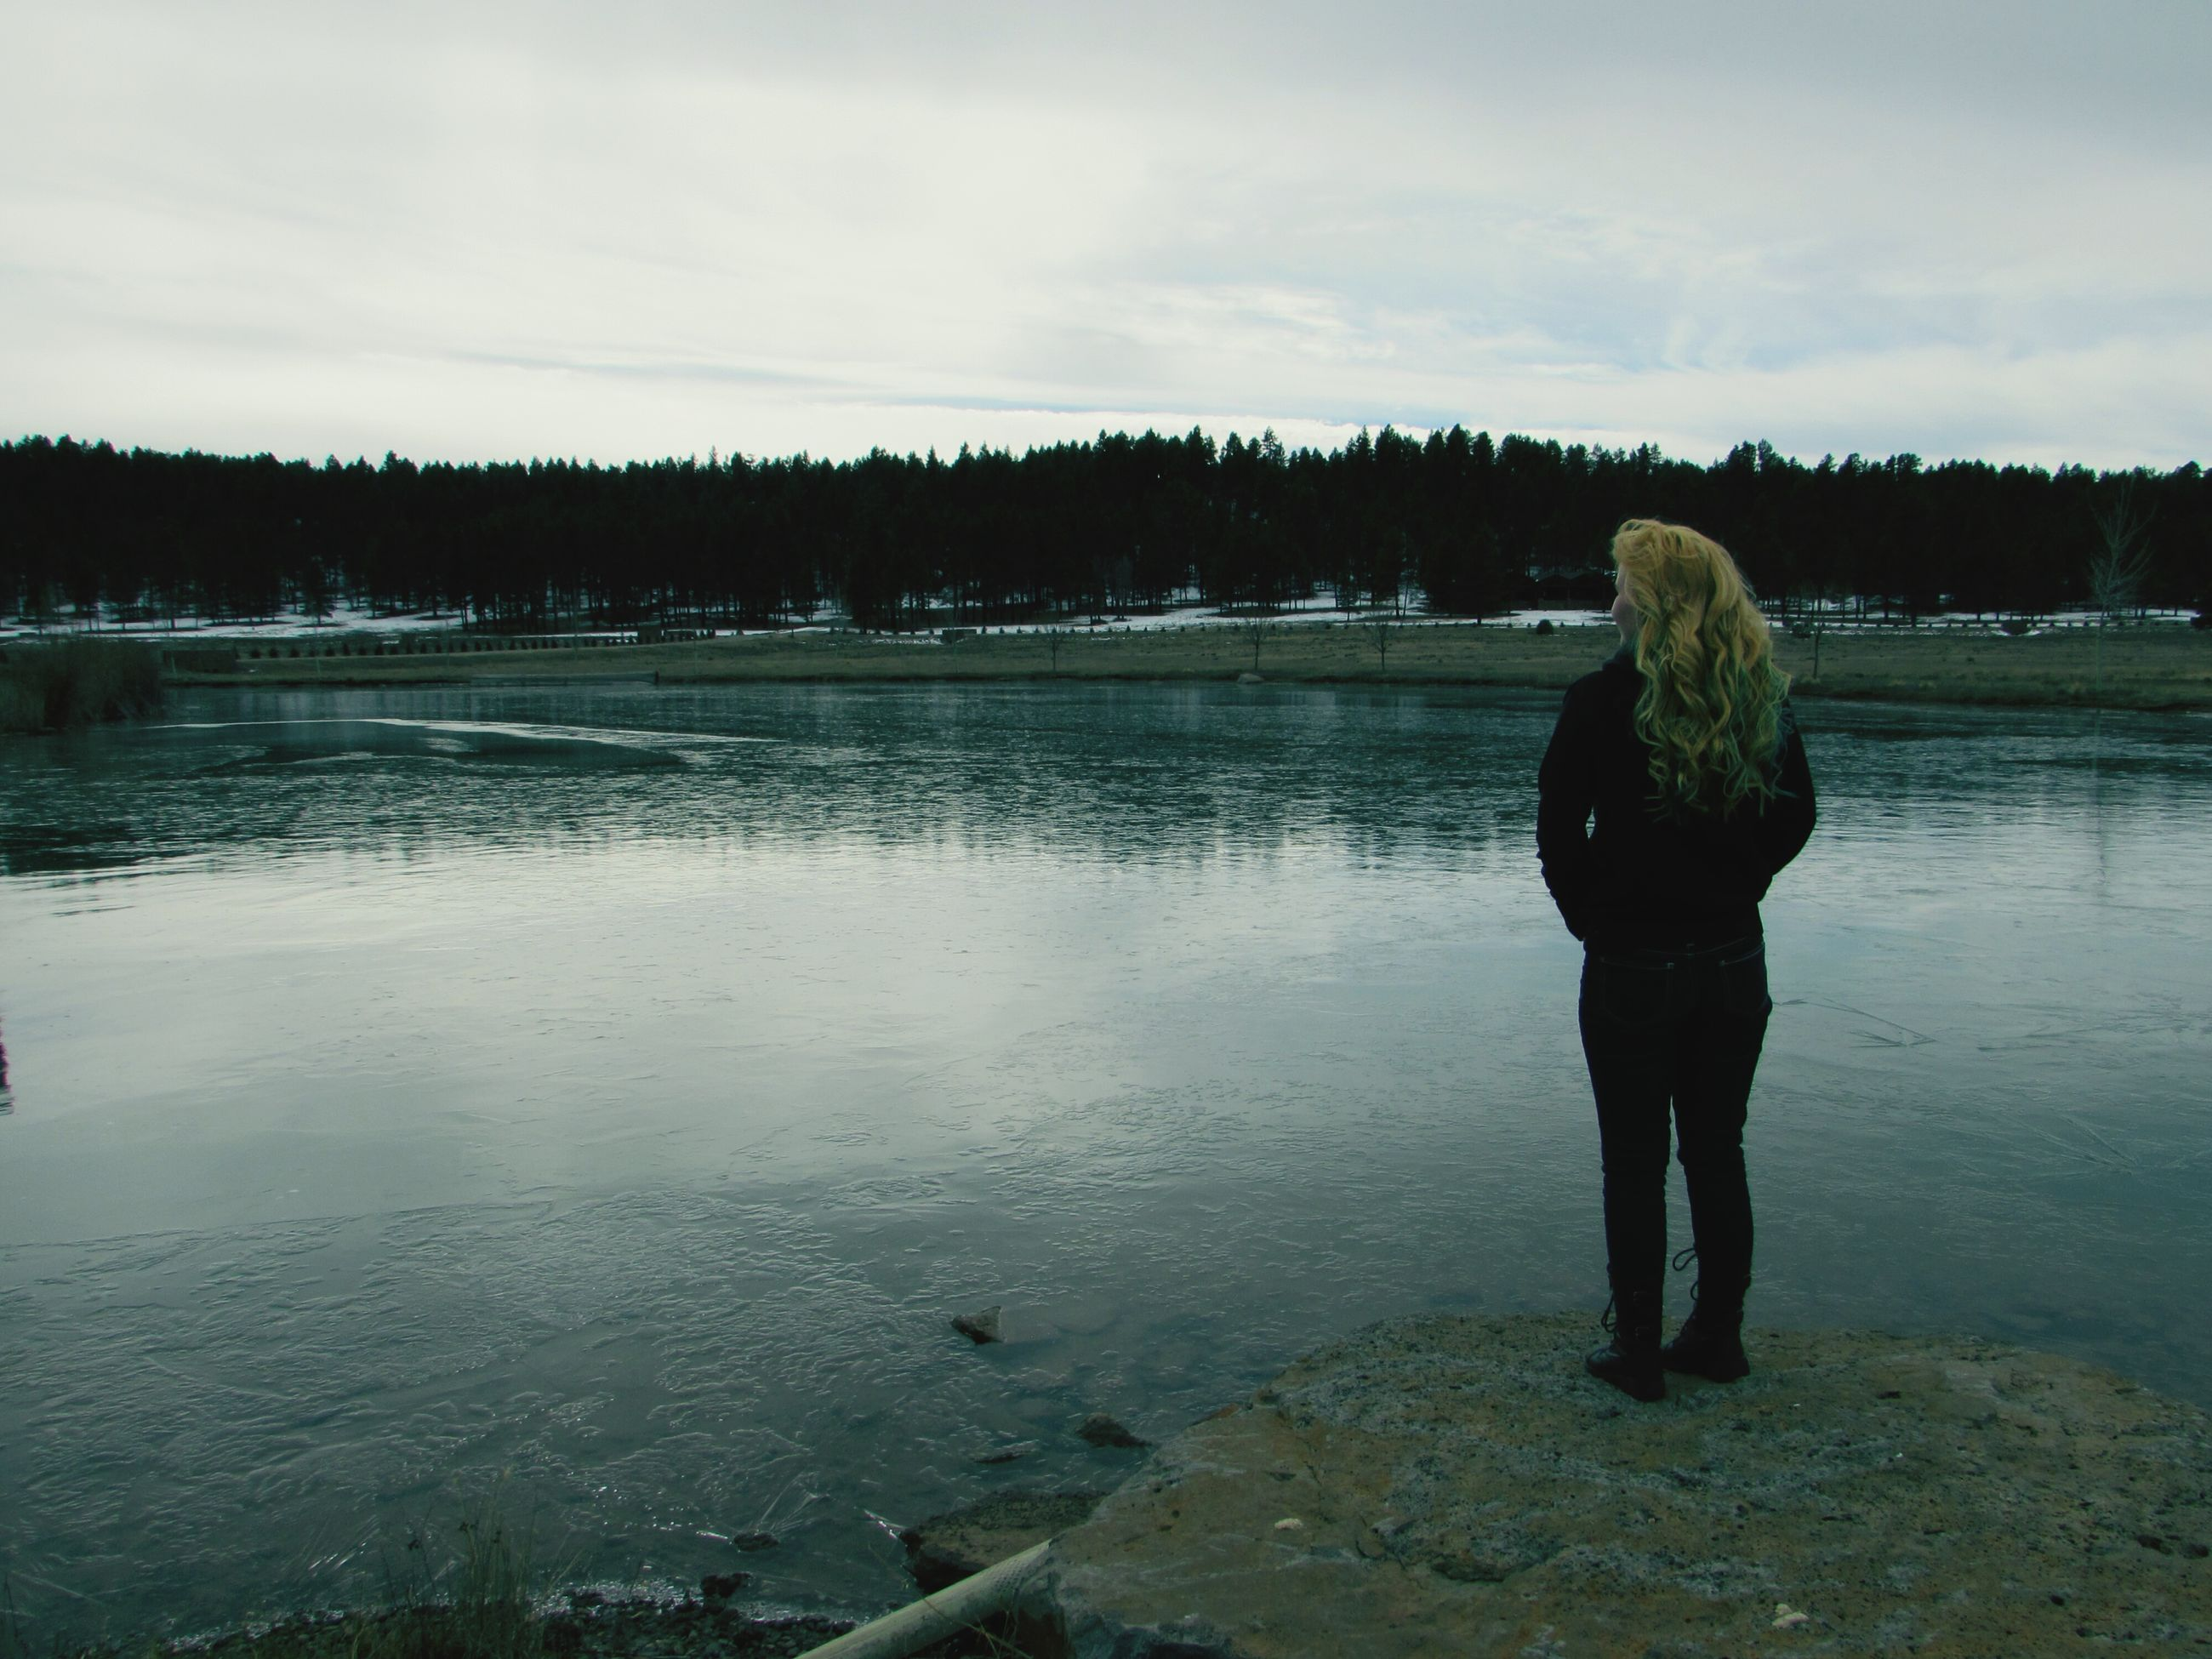 water, lifestyles, leisure activity, full length, standing, casual clothing, sky, lake, rear view, tranquility, three quarter length, tranquil scene, nature, scenics, beauty in nature, young adult, cloud - sky, person